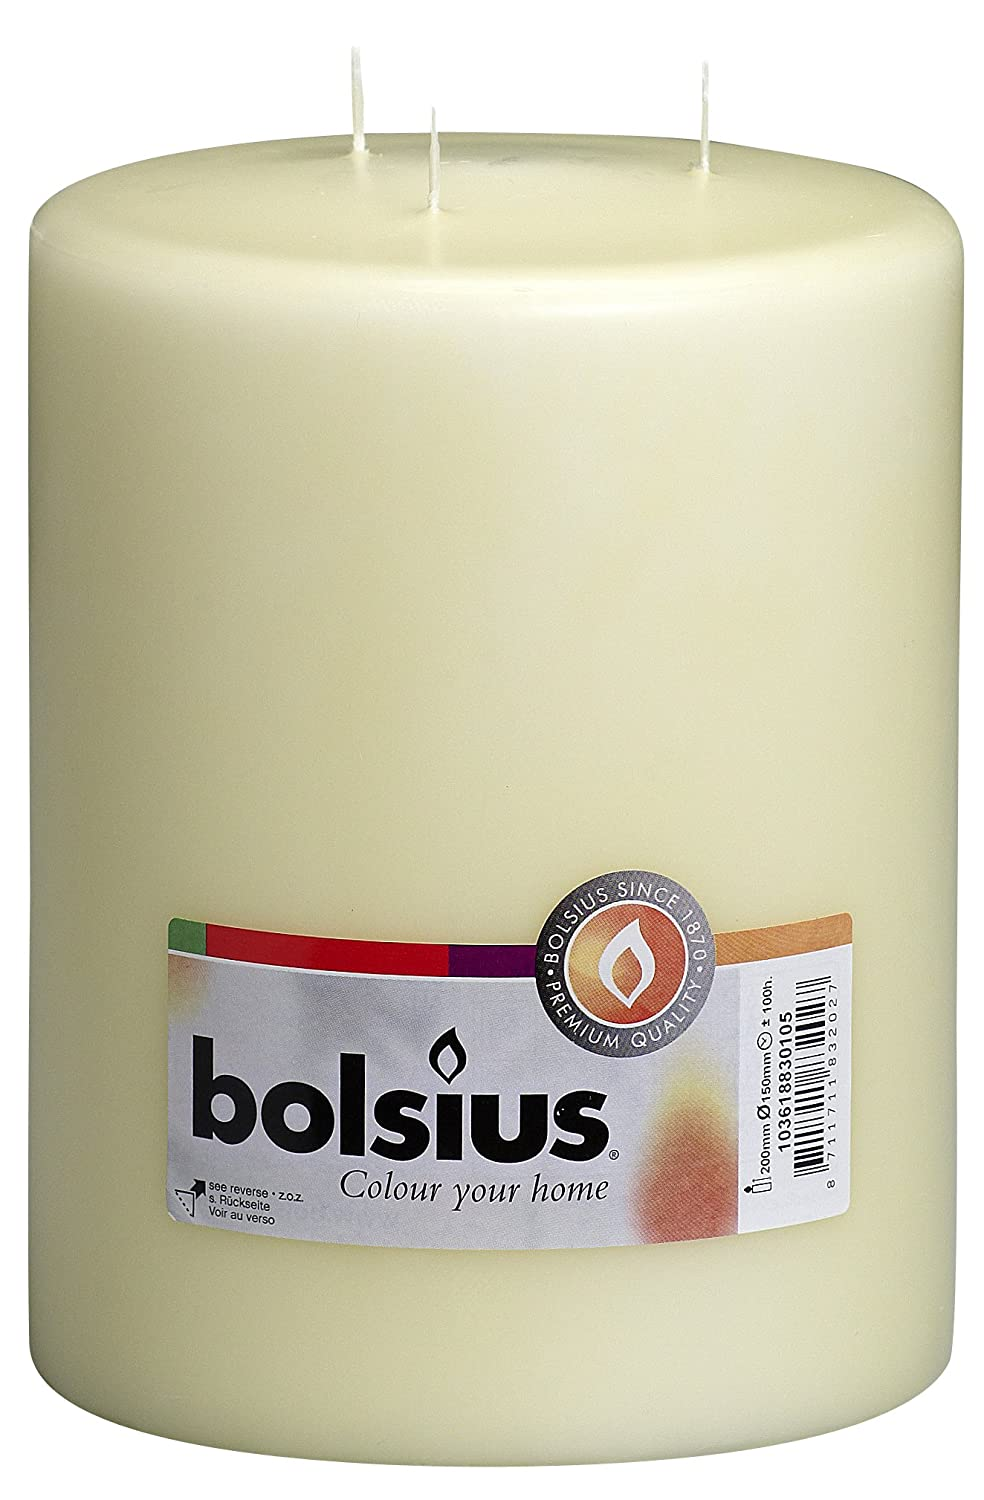 Multi Wick Candles Bolsius Multi Wick Candle Paraffin Wax Ivory 15 X 20 Cm Amazon